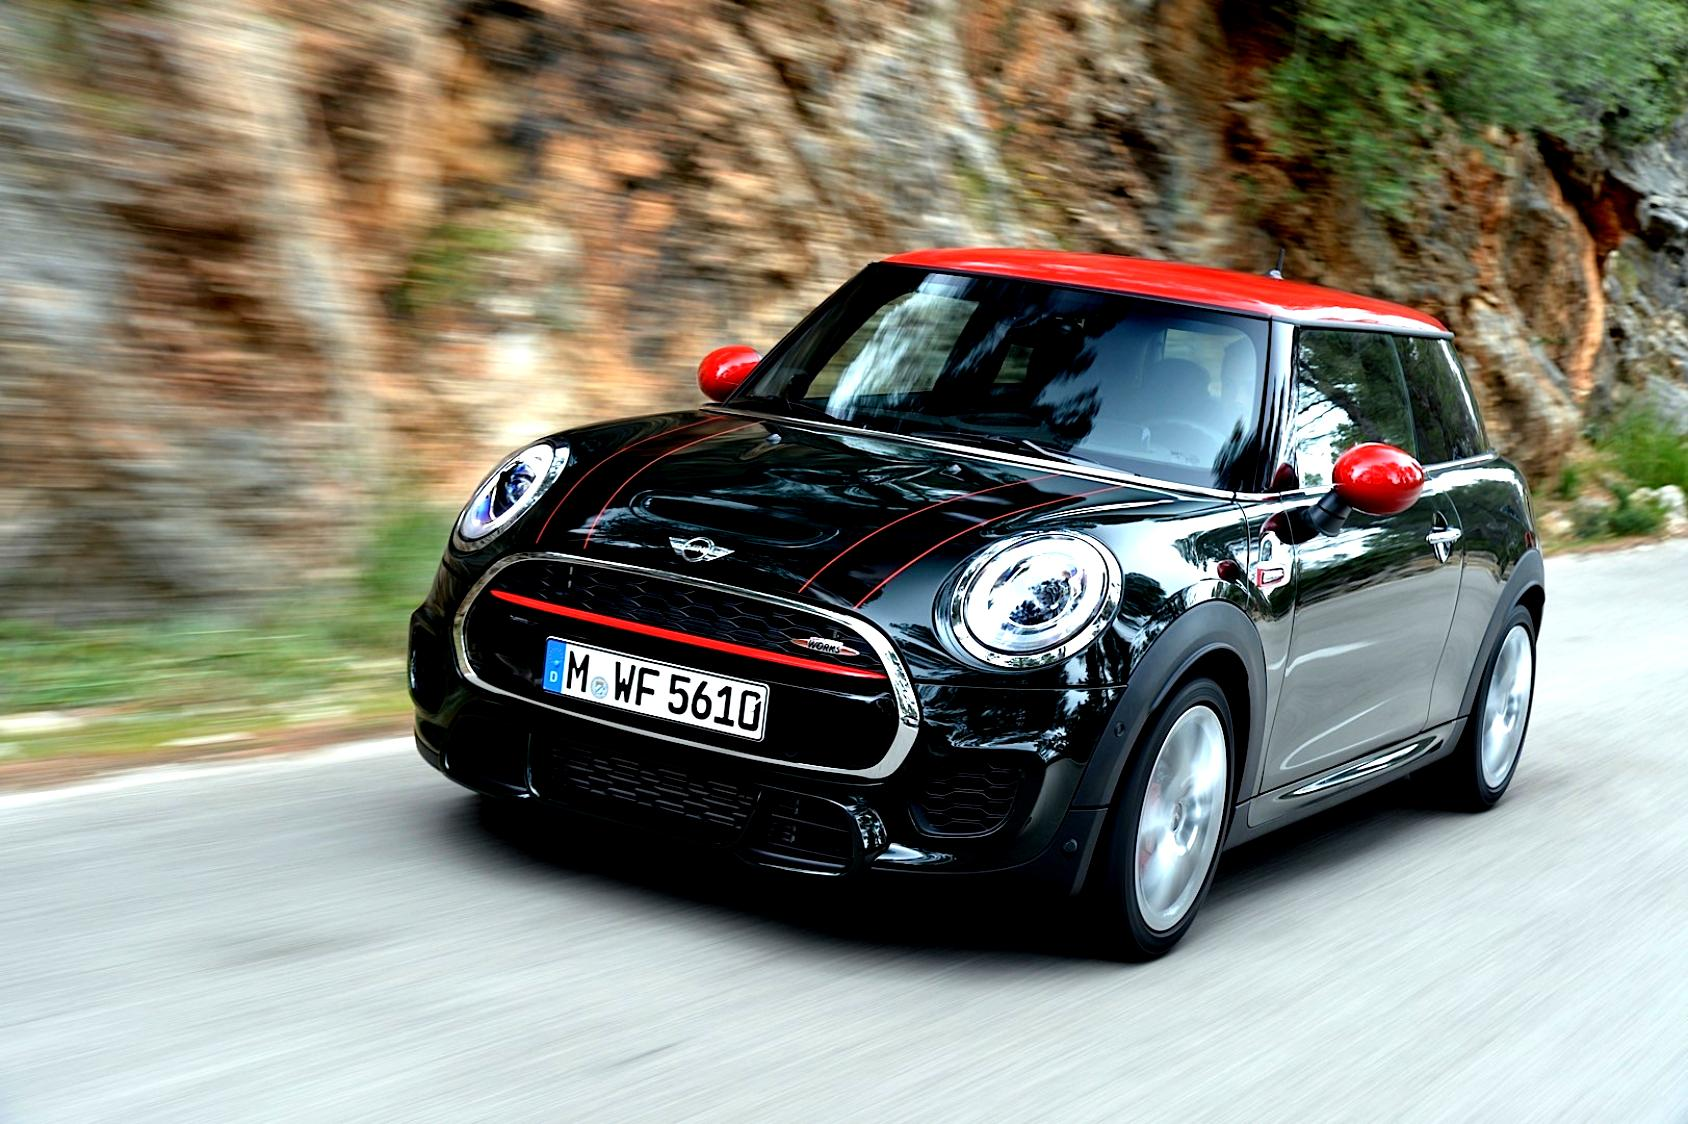 Mini Hatch 2014 #126